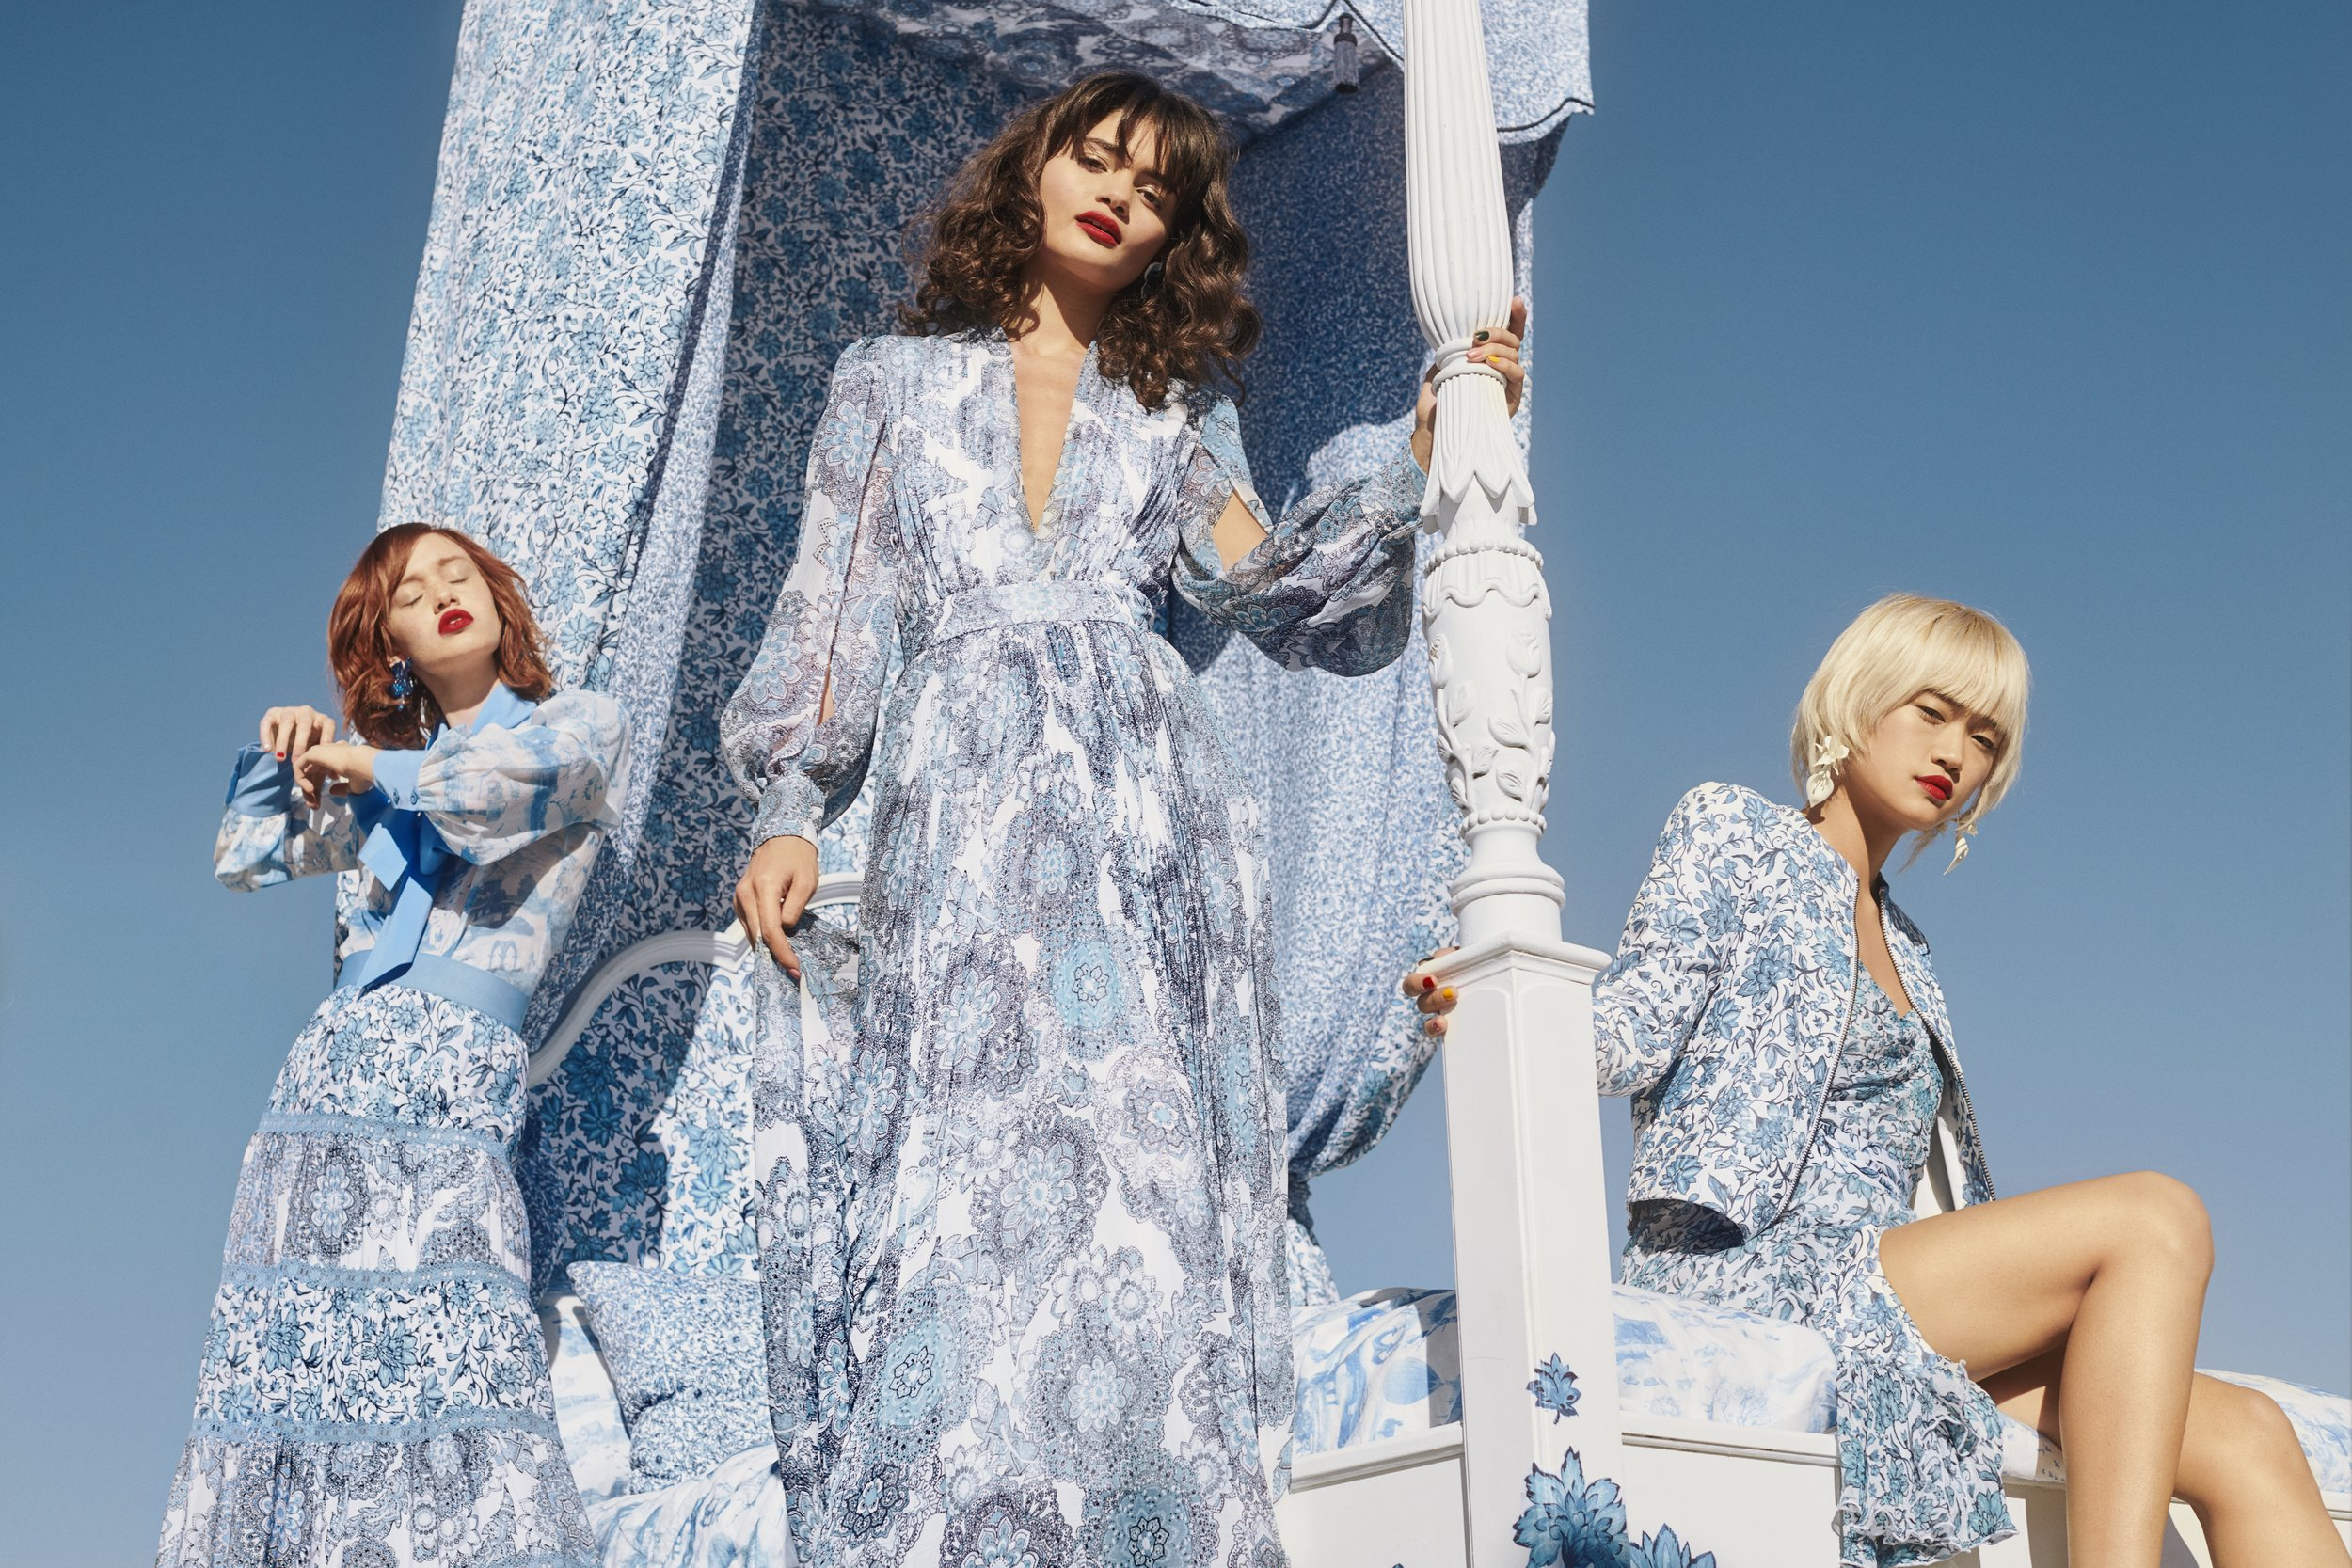 M771_DKR_Alice+Olivia_Harrods_Blue_07_1312_FNL.jpeg